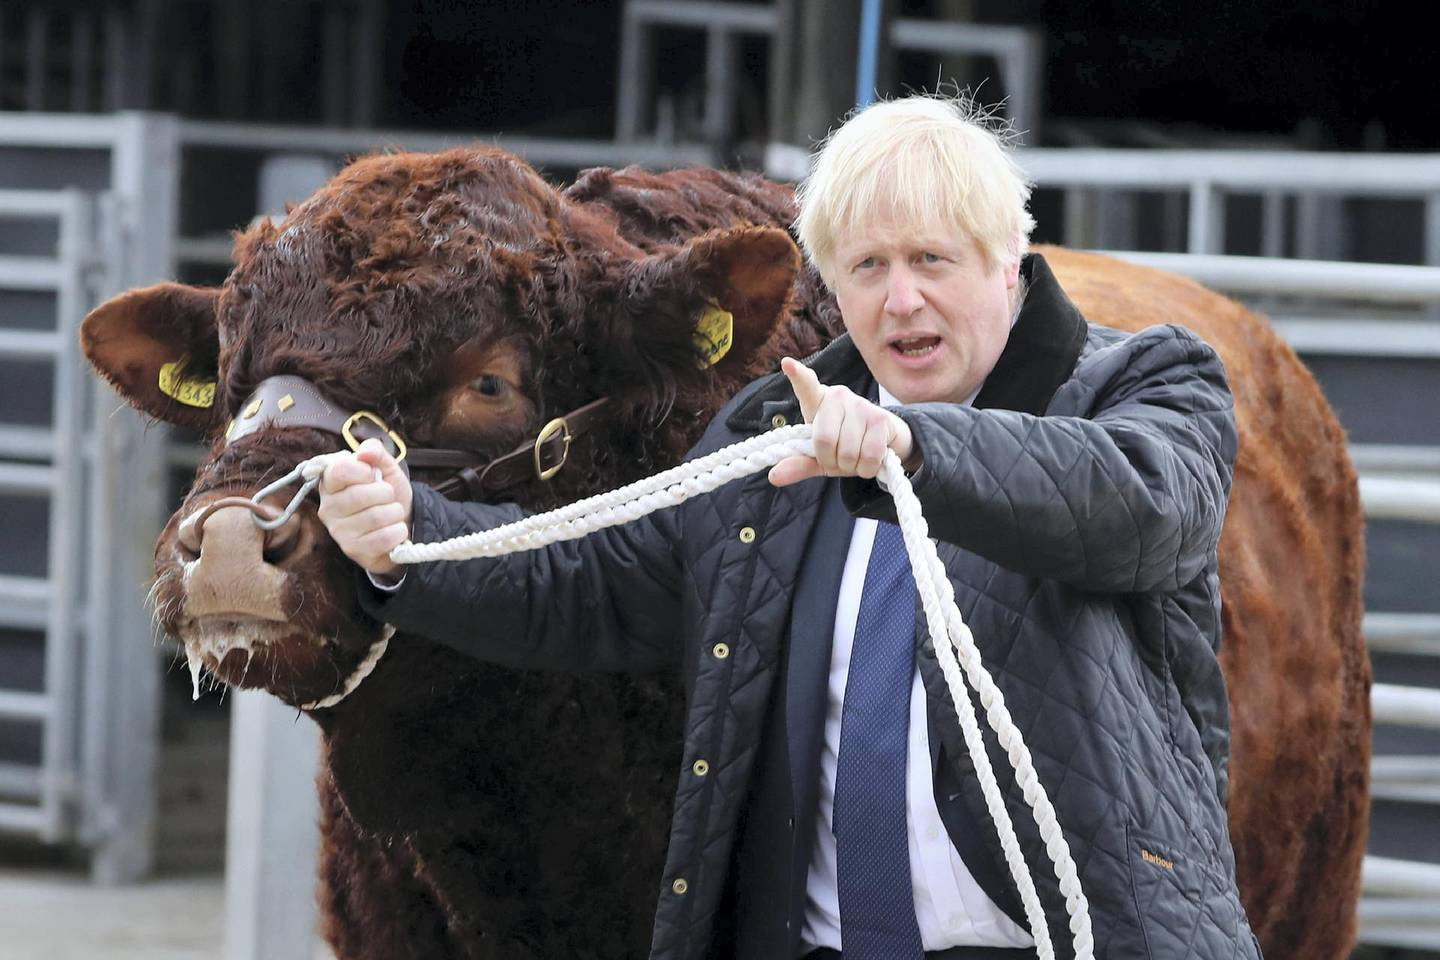 Britain's Prime Minister Boris Johnson (R) tries to walk a bull during a visit to Darnford Farm in Banchory near Aberdeen in Scotland on September 6, 2019. - Prime Minister Boris Johnson heads to Scotland on Friday in campaign mode despite failing to call an early election after MPs this week thwarted his hardline Brexit strategy. (Photo by Andrew Milligan / POOL / AFP)